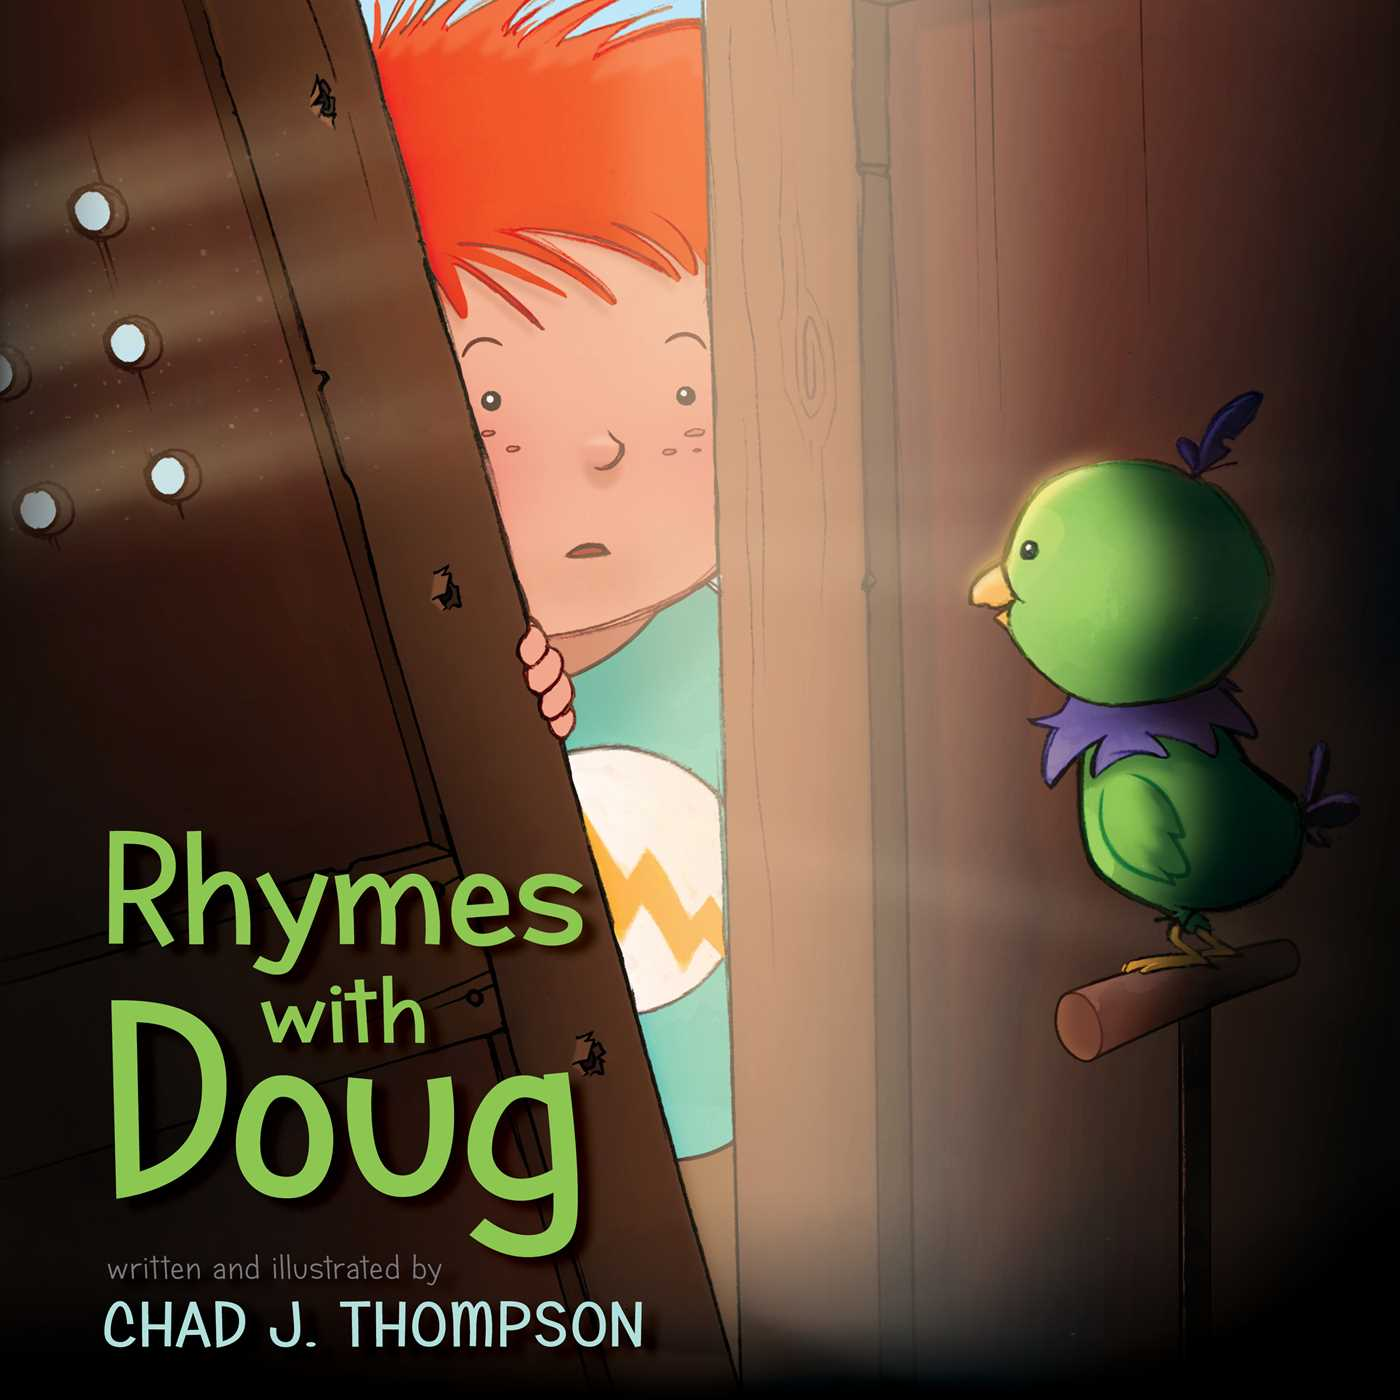 Rhymes with doug 9781481470957 hr